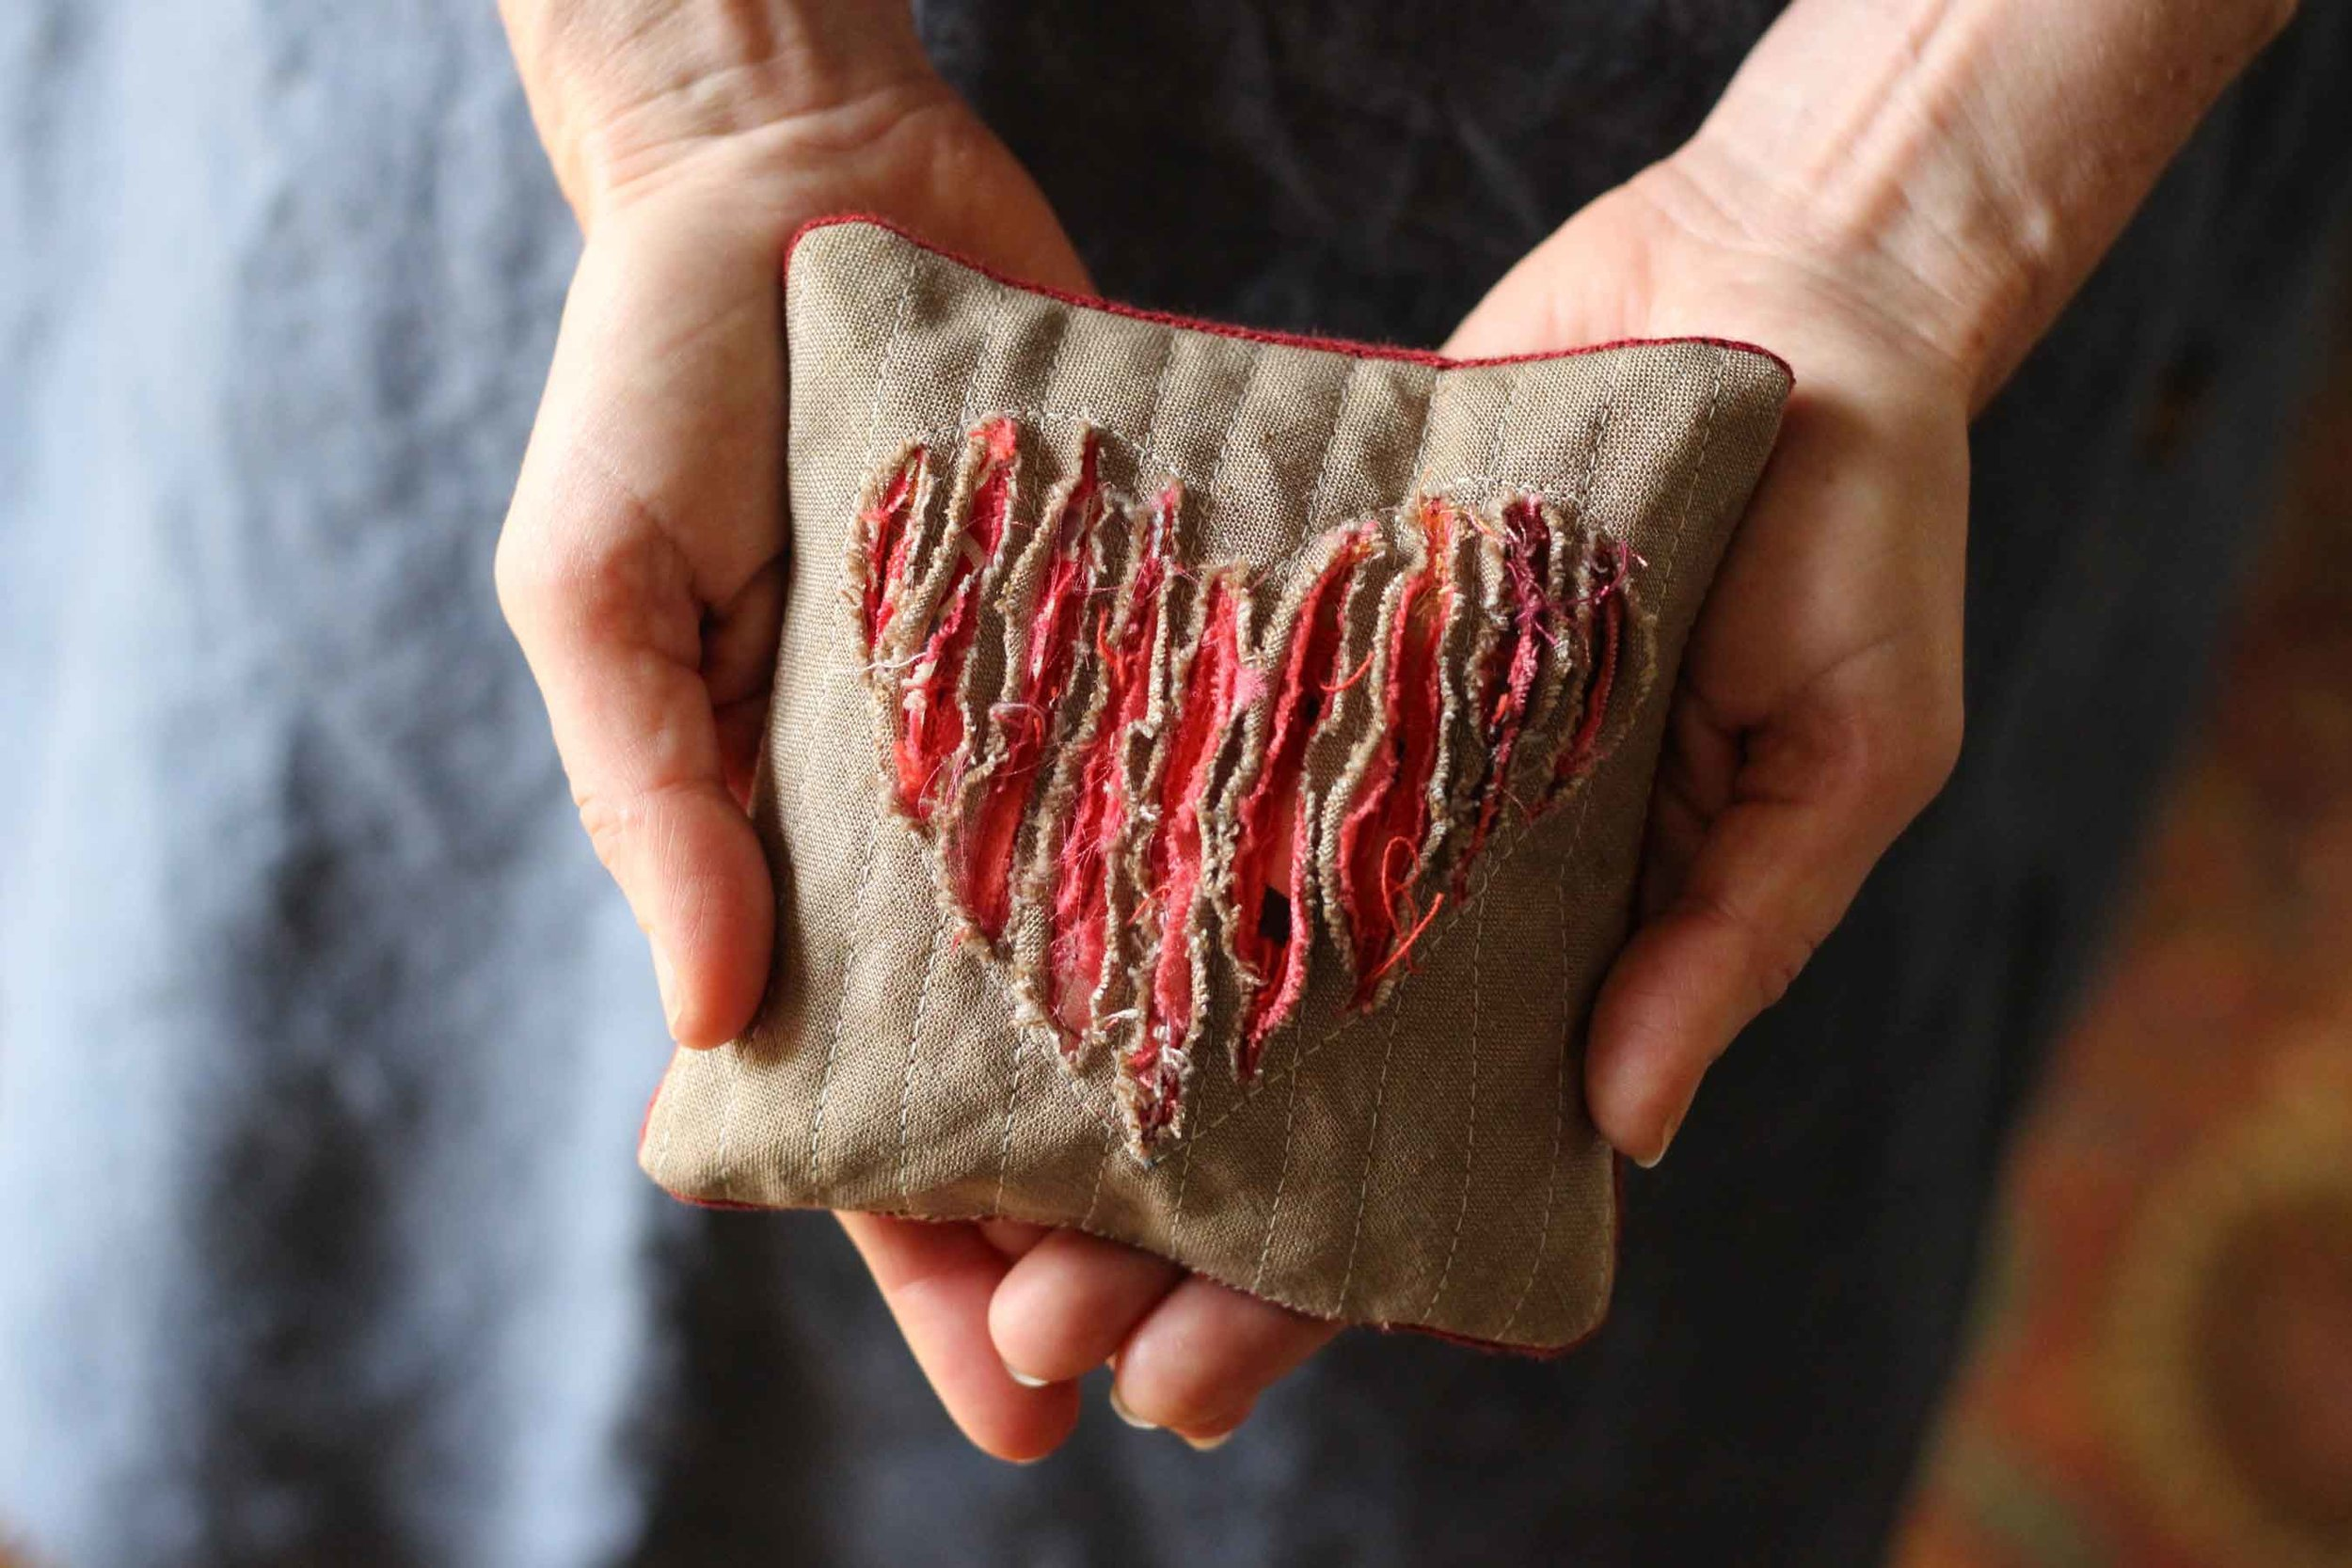 Warming our hands with our rice filled pillow. The heart design is made with a technique called slashing. This is a great project for using up scraps of fabric. Find the instructions at Thread & Whisk.com